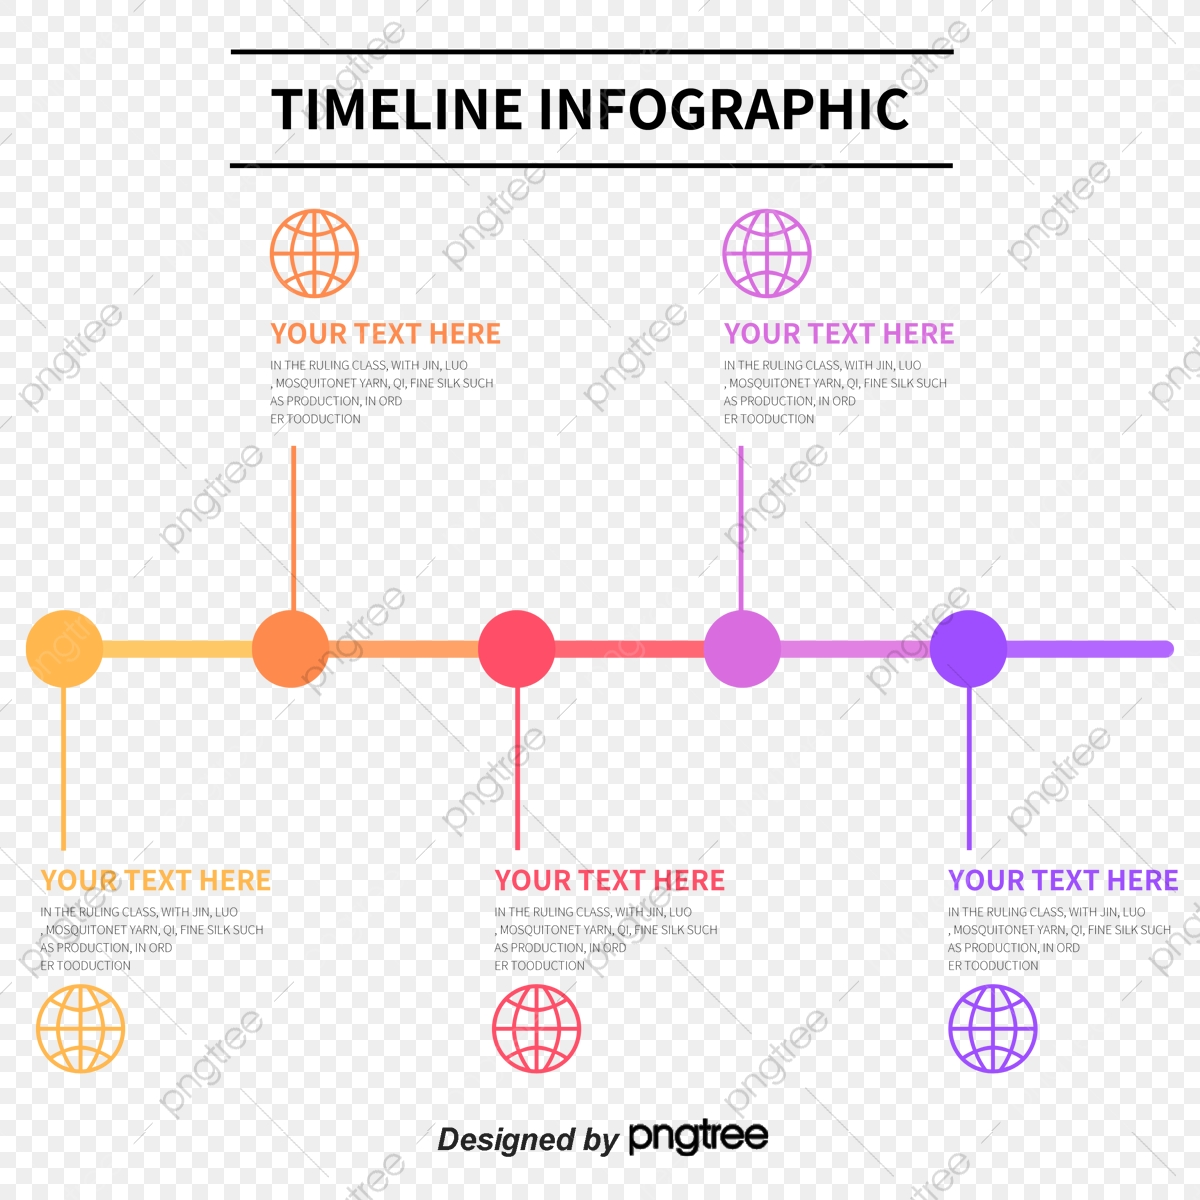 Fashion Design Business Timeline Stereo Chart Business Chart Ppt Graphics Png Transparent Clipart Image And Psd File For Free Download